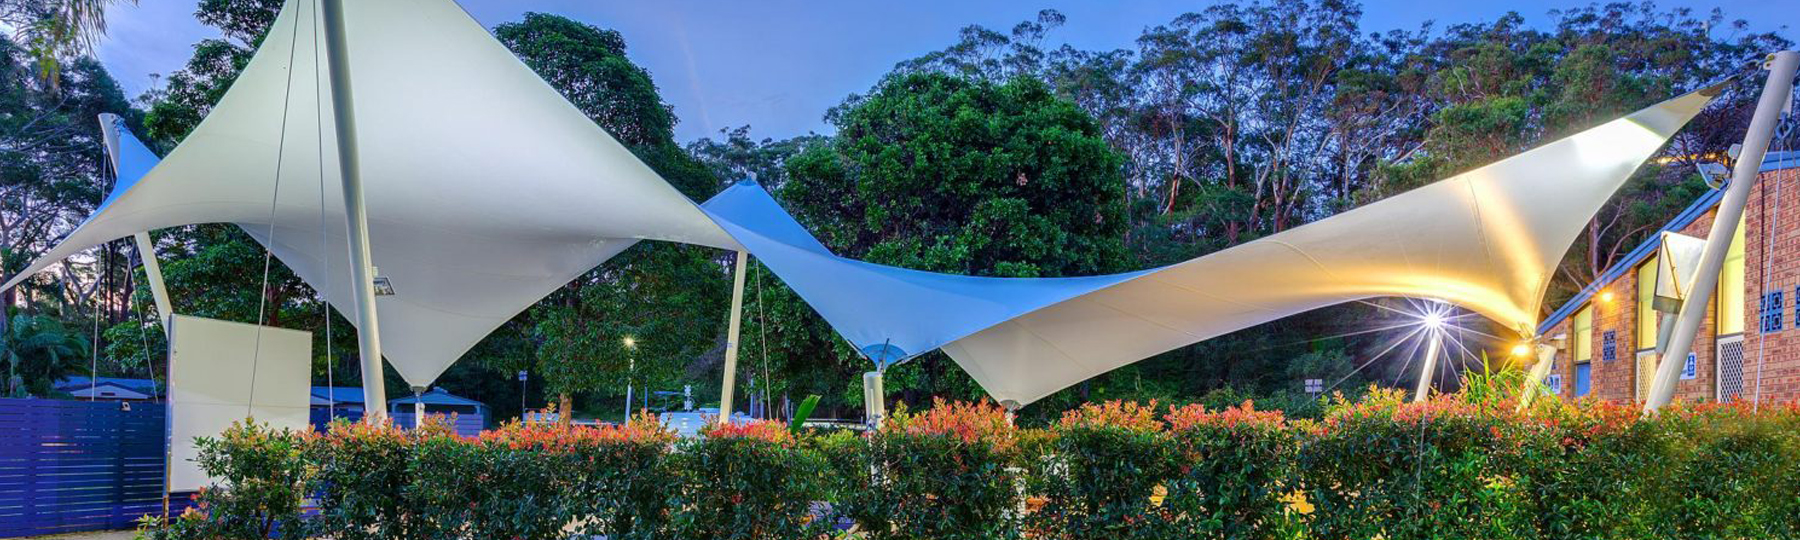 Shade To Order Australia - BBQ sail area | Polyedge sail - Newcastle sails | Sydney sails